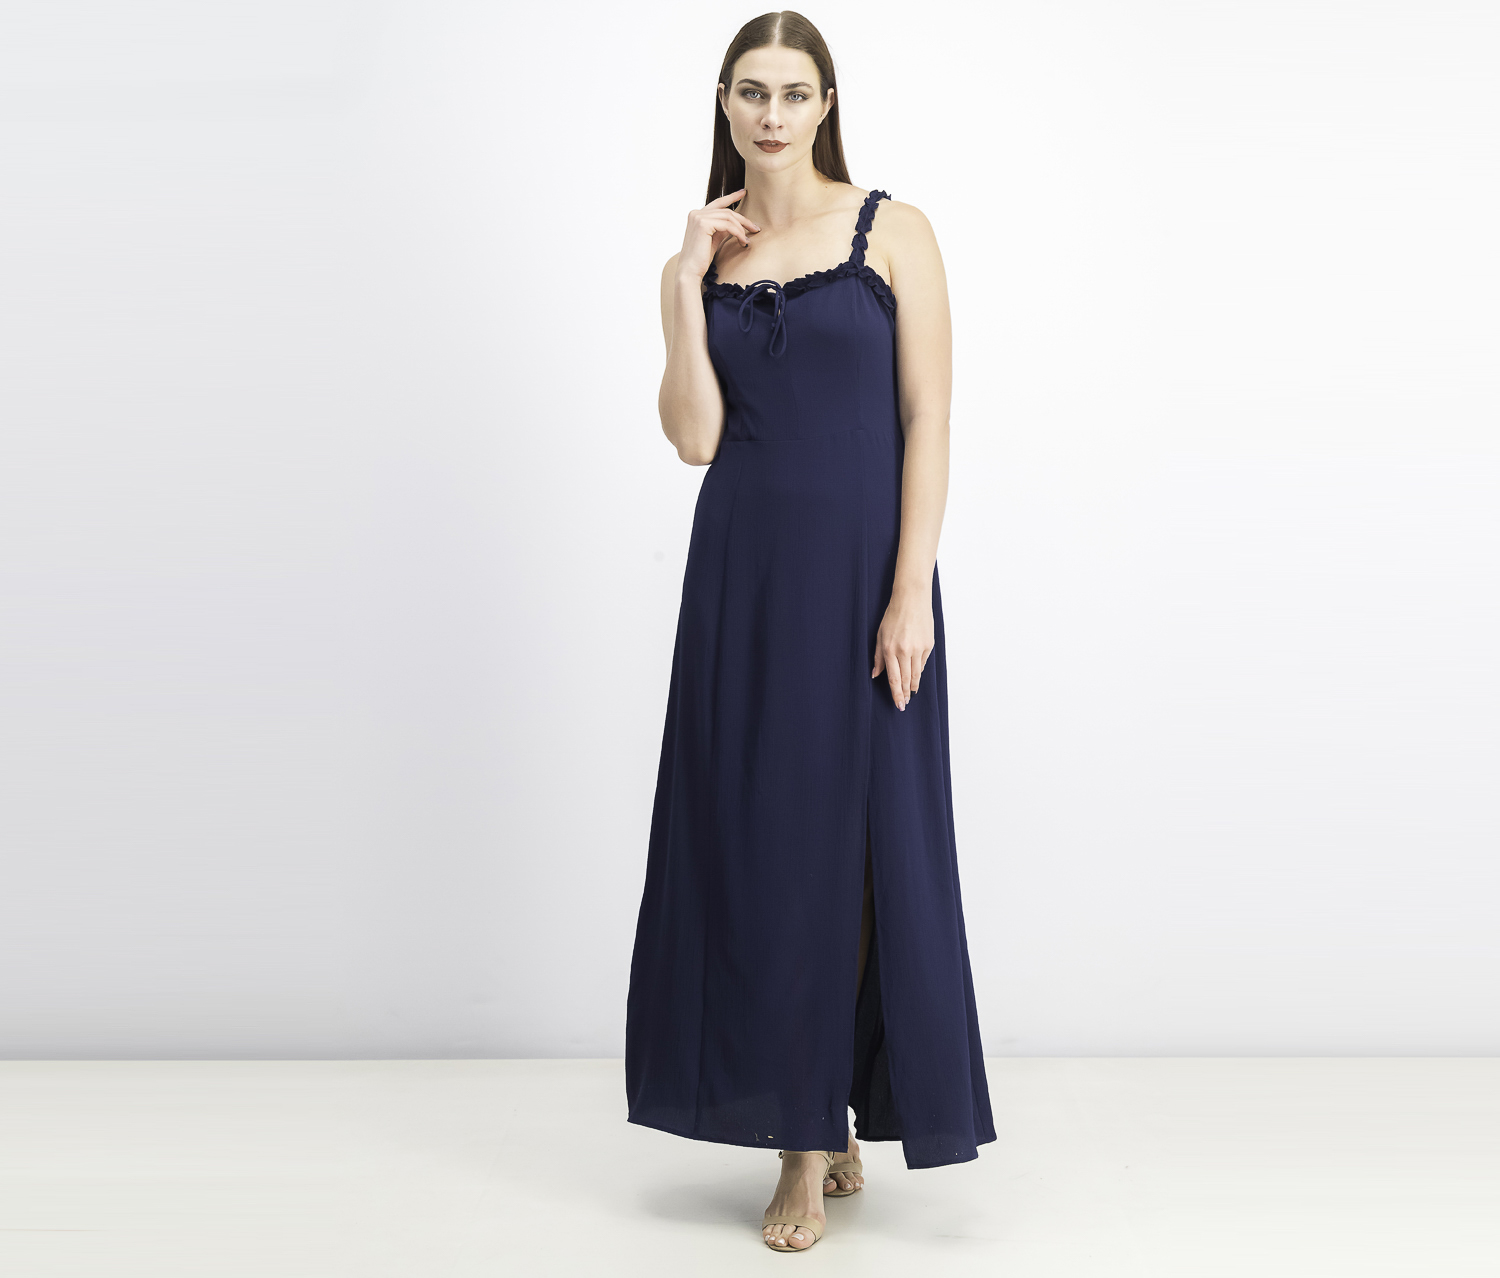 Women's Juniors' Ruffled Lace-up Maxi Dress, Navy